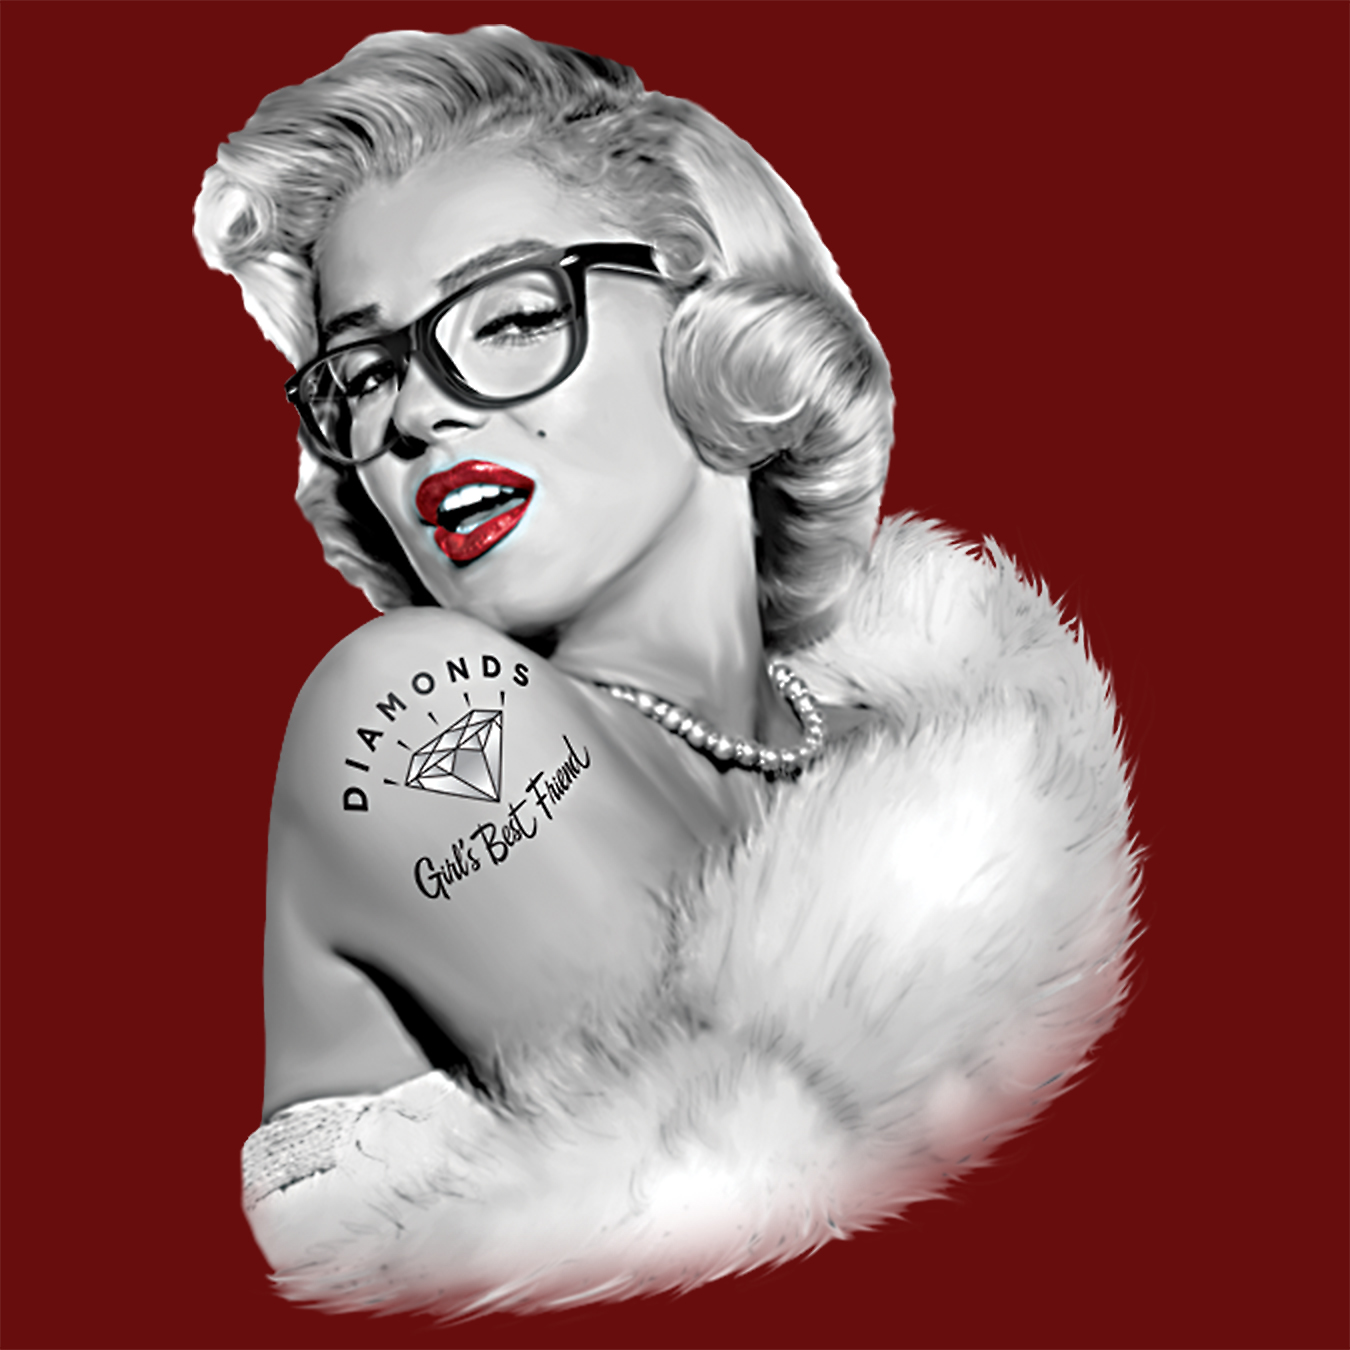 Wild Side Offers New Marilyn Stock Transfers - February 15, 2019